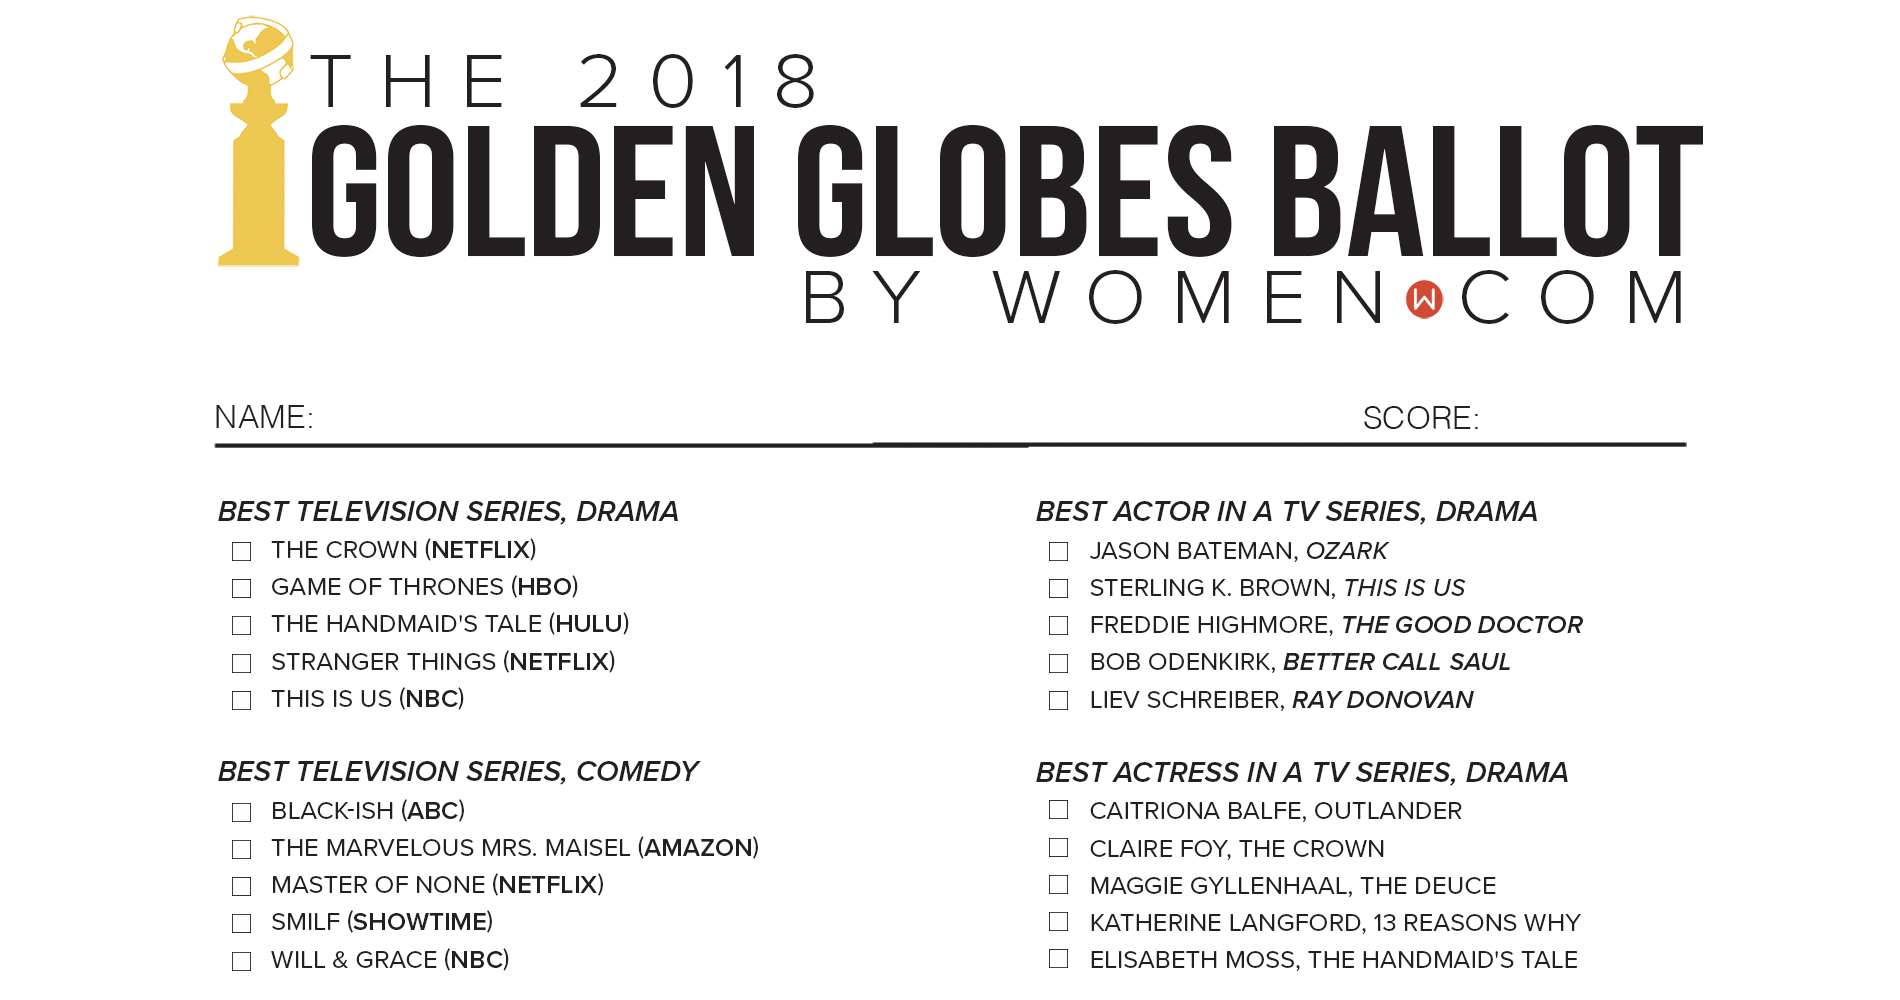 Golden Globes 2018 printable ballot, pdf, preview